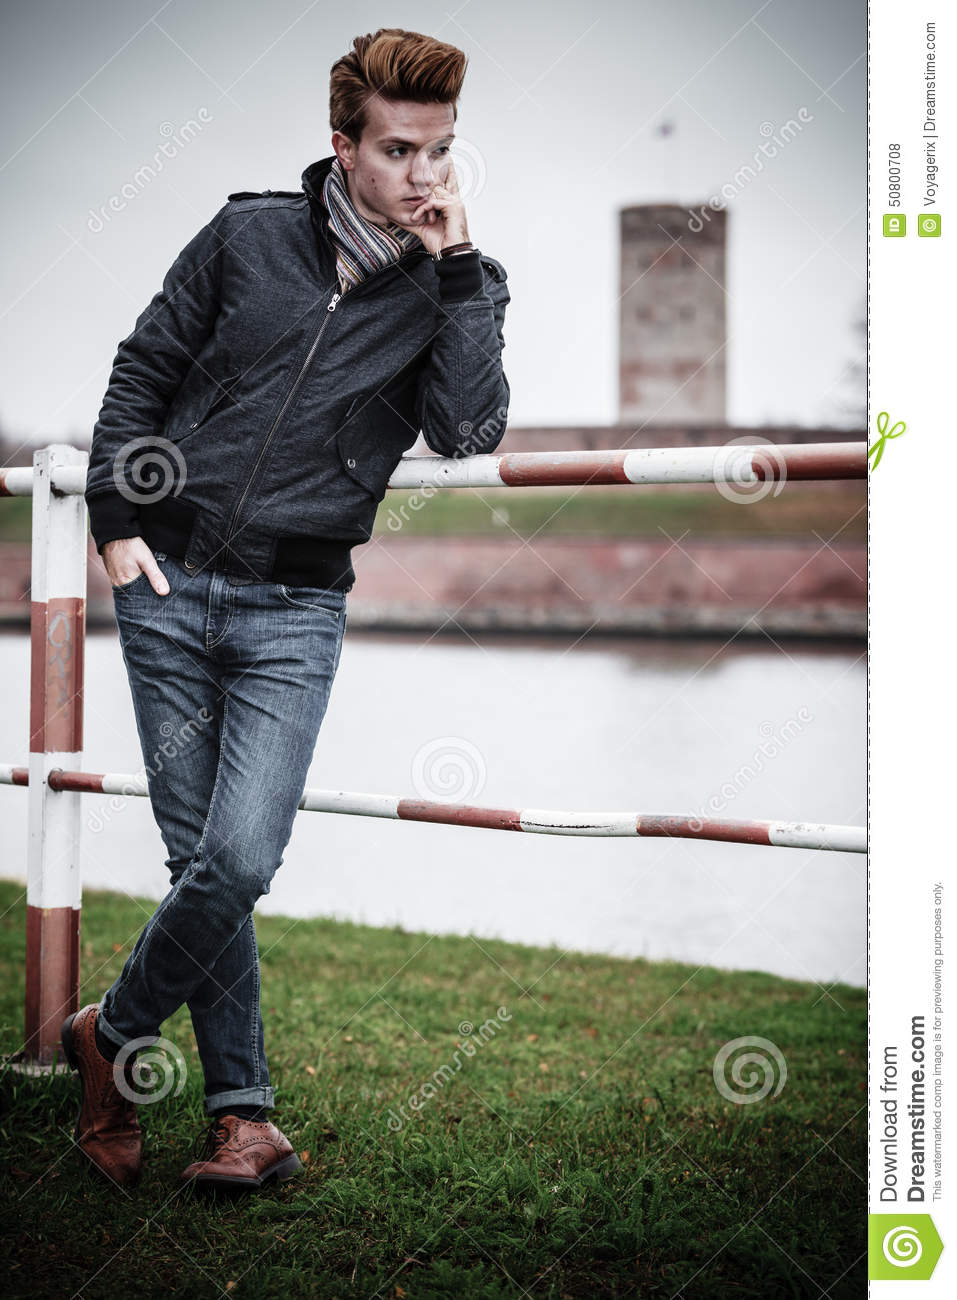 Fashion Model Guy Portrait Outdoors Stock Photo Image